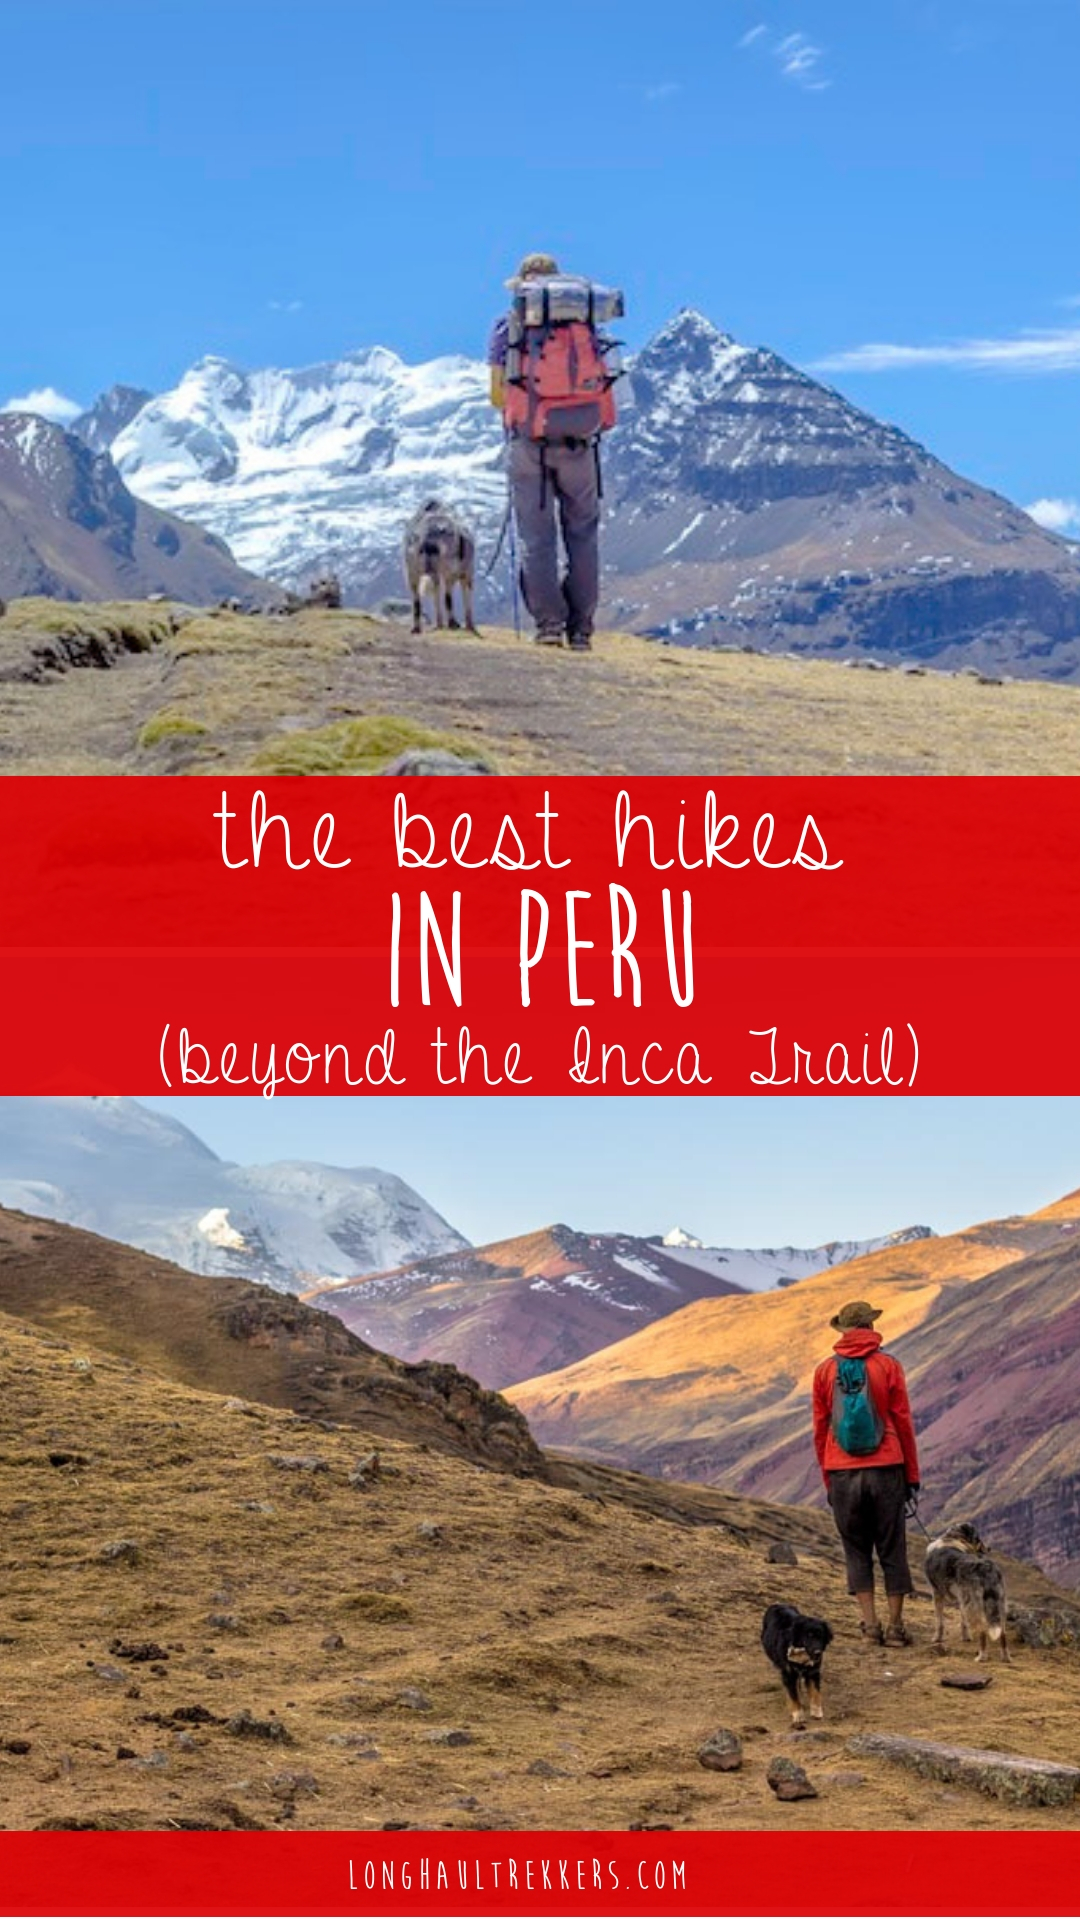 Ssome of the best hiking in Peru is beyond the Inca Trail. Read more to help plan your Peru itinerary.